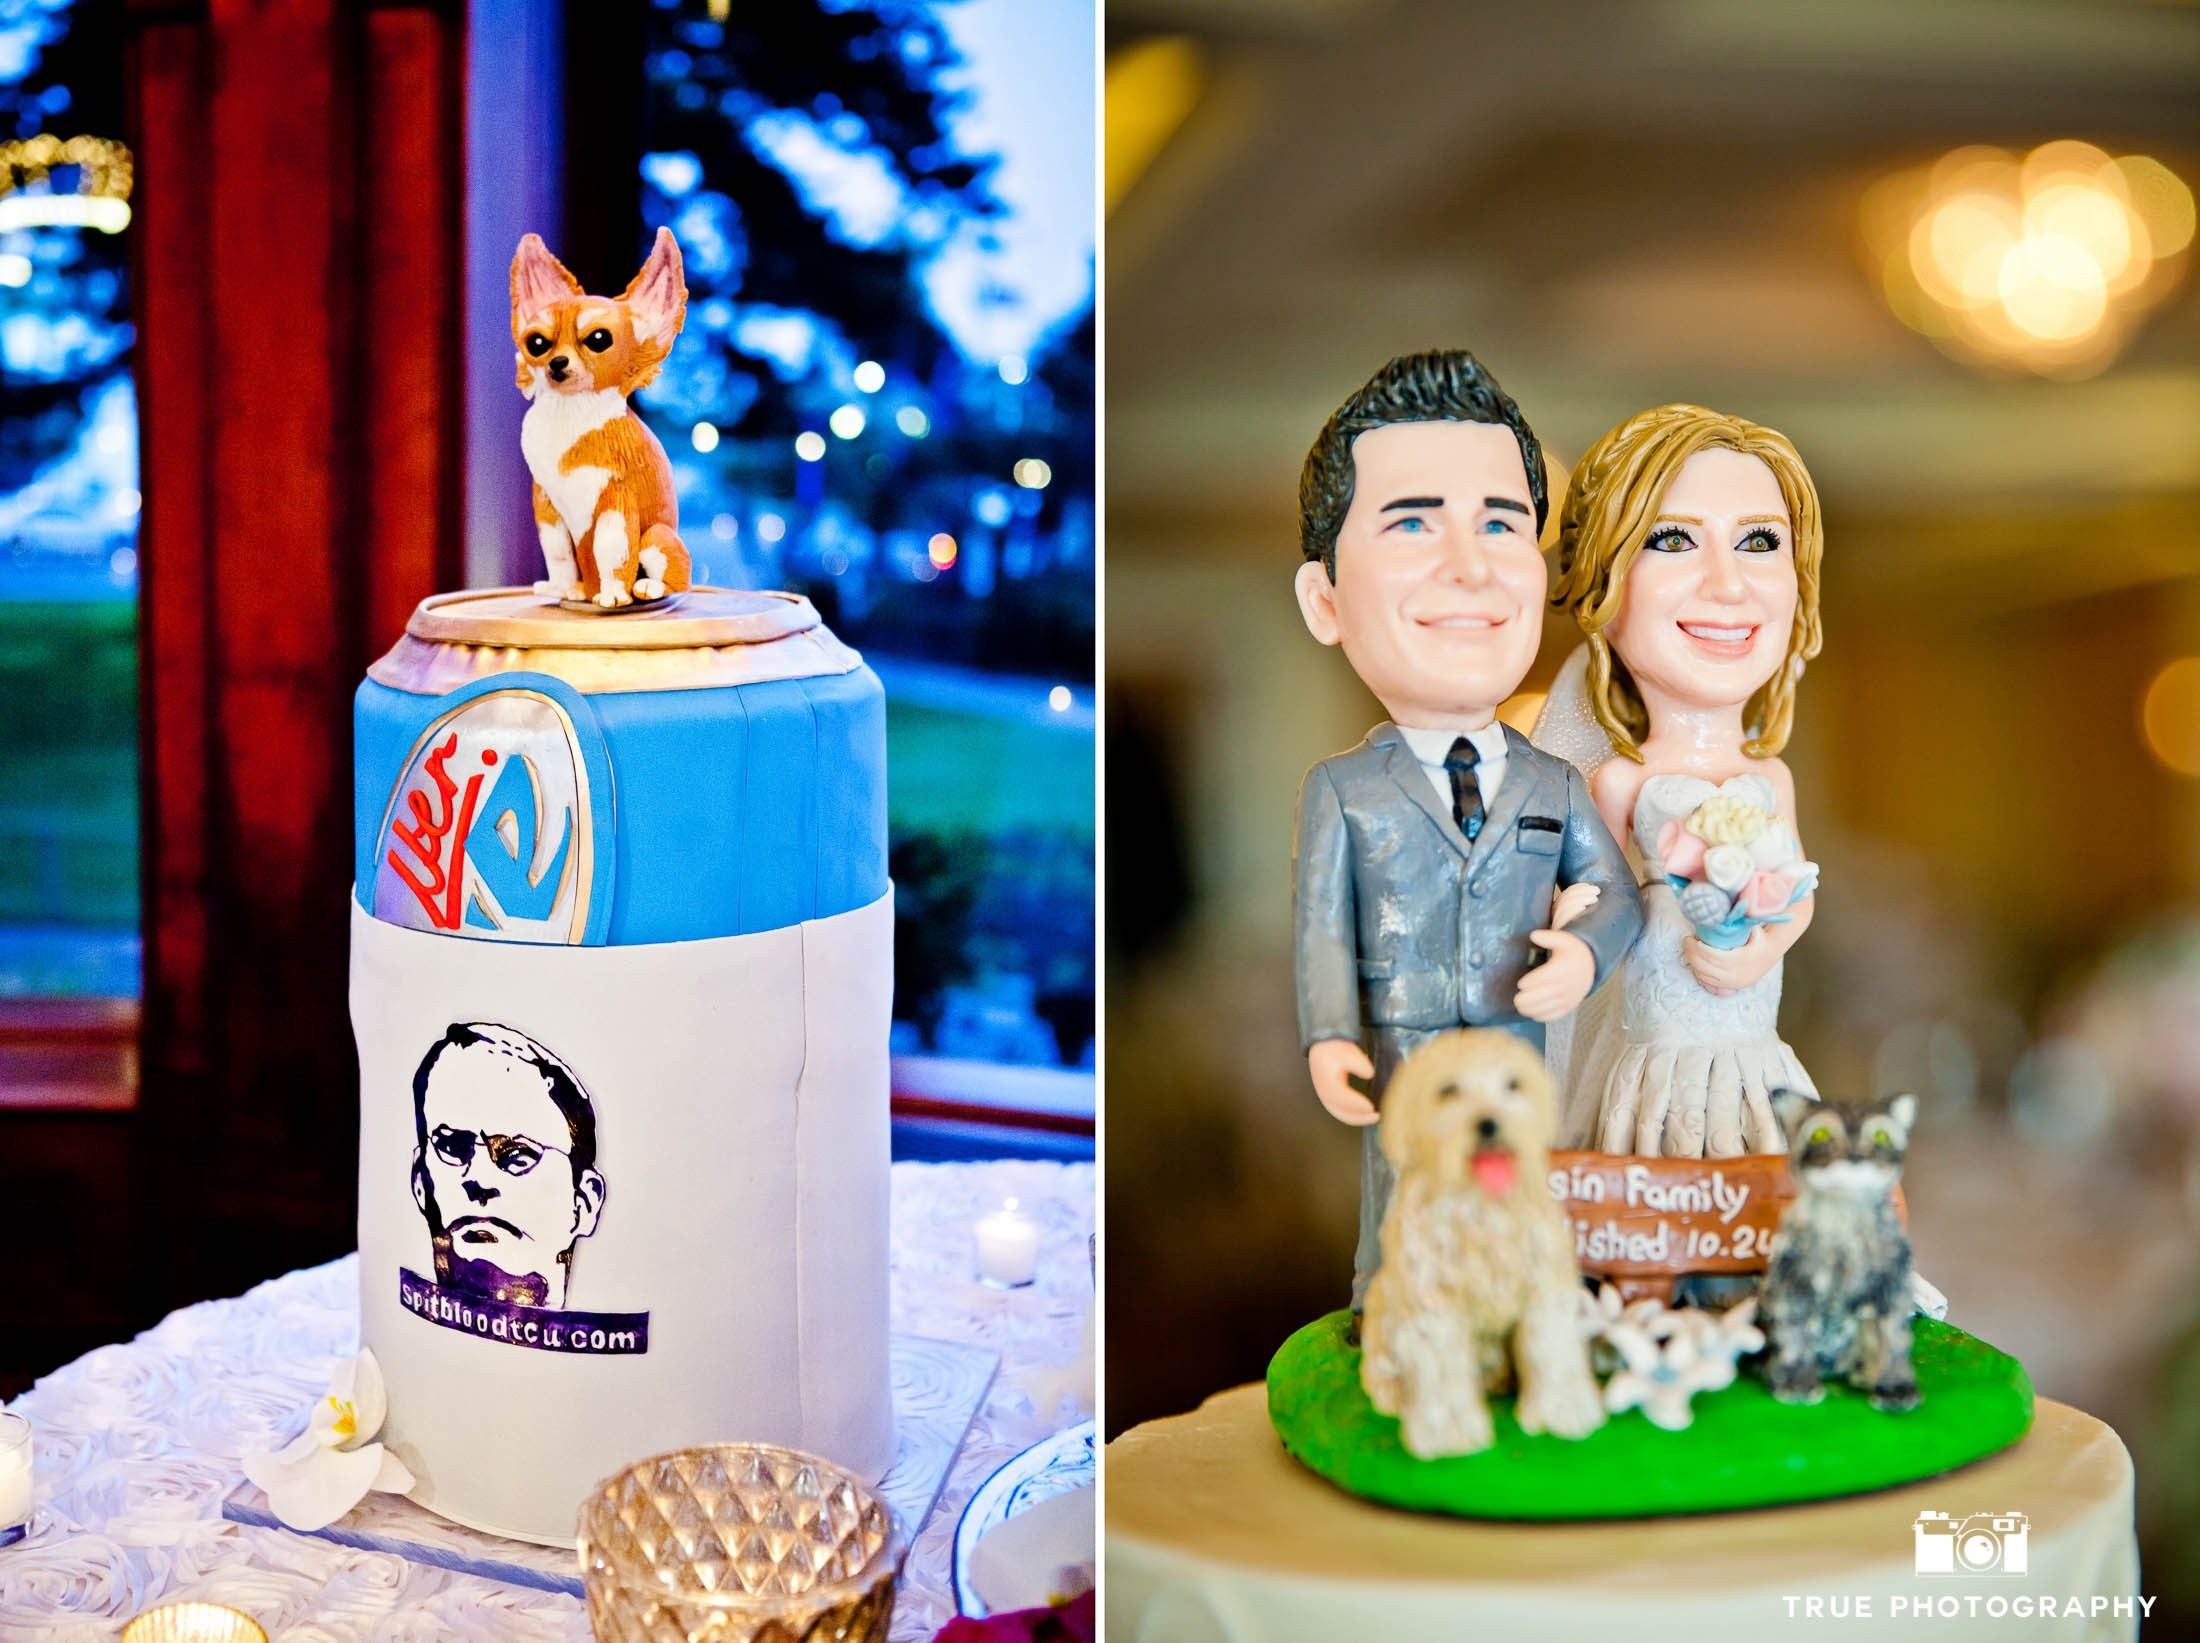 Funny and cute dog-inspired wedding cake toppers with wedding couple